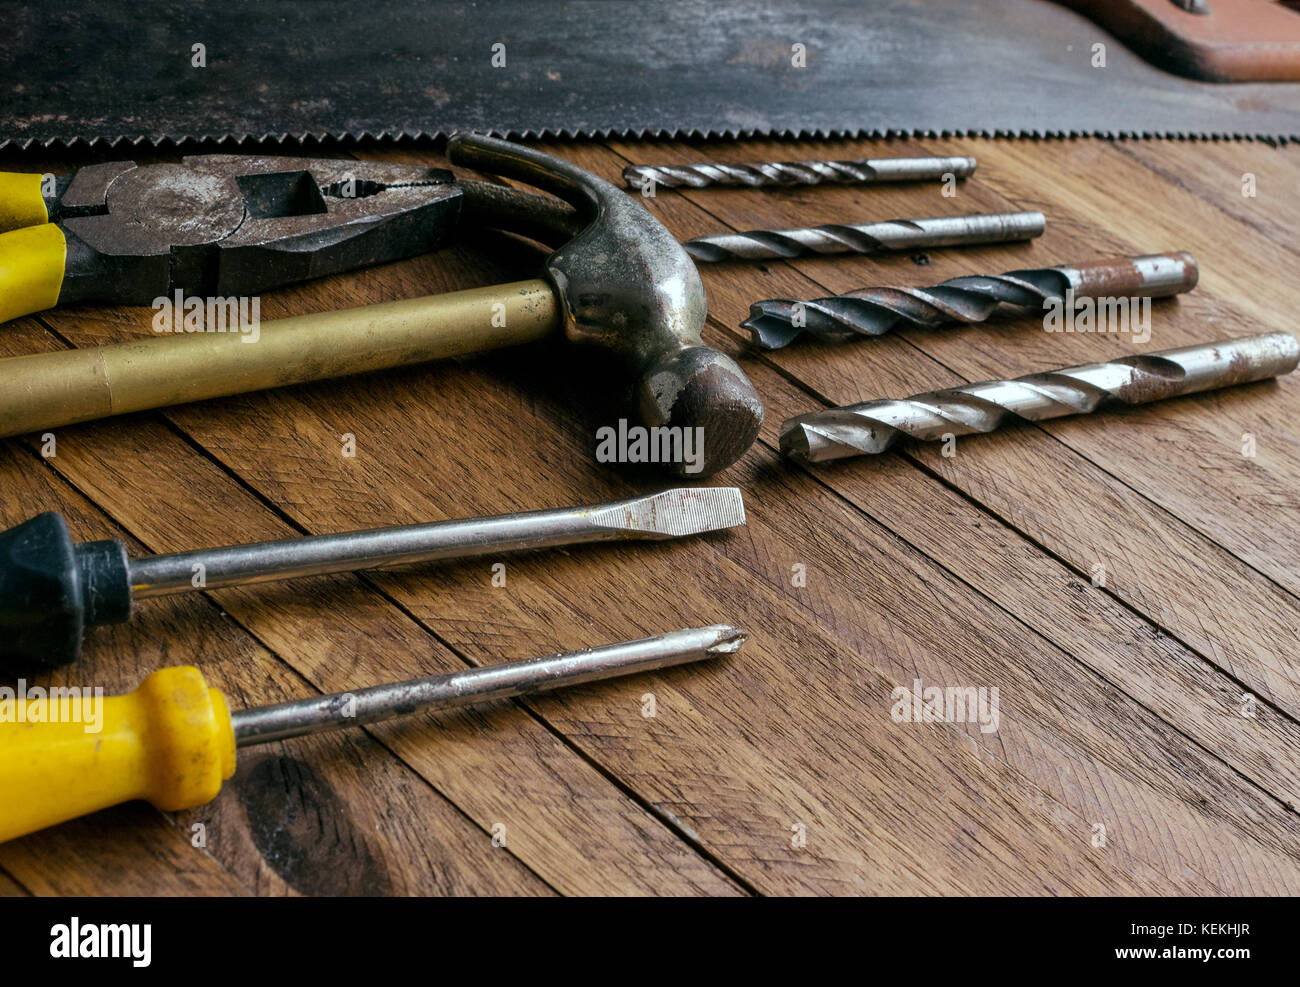 Rusty and old used carpentry and garage tools on a light brown wood background, showing varied tools,with metal pliers and saw,metal drill bits,hammer Stock Photo